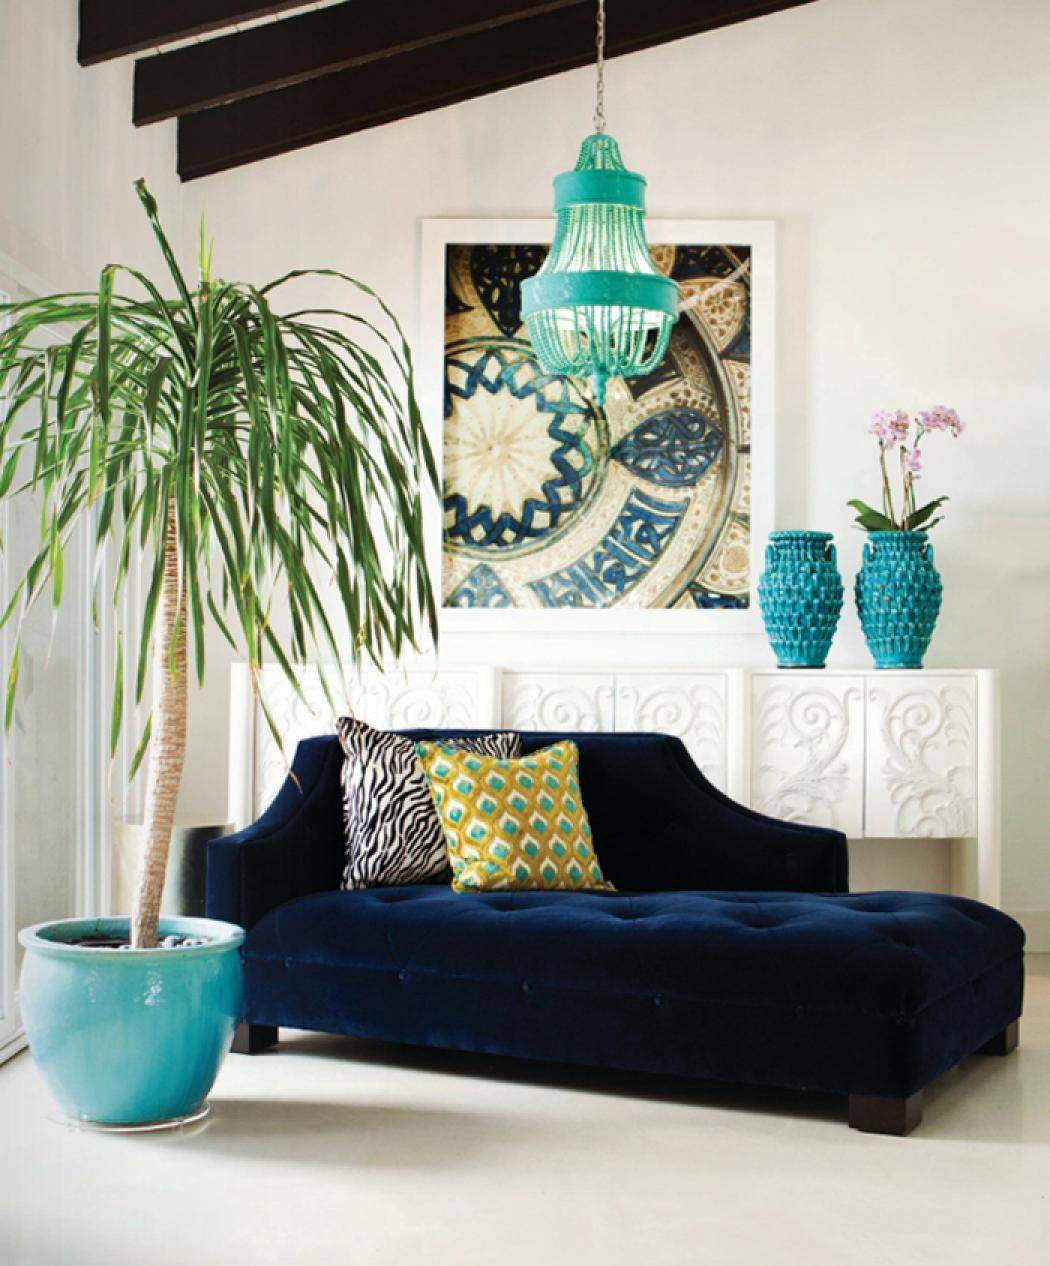 10 Refreshing Ways to Redecorate your Living Room for Summer3 Living Room Design How to Give a Pop of Color to your Living Room Design 10 Refreshing Ways to Redecorate your Living Room for Summer3 1